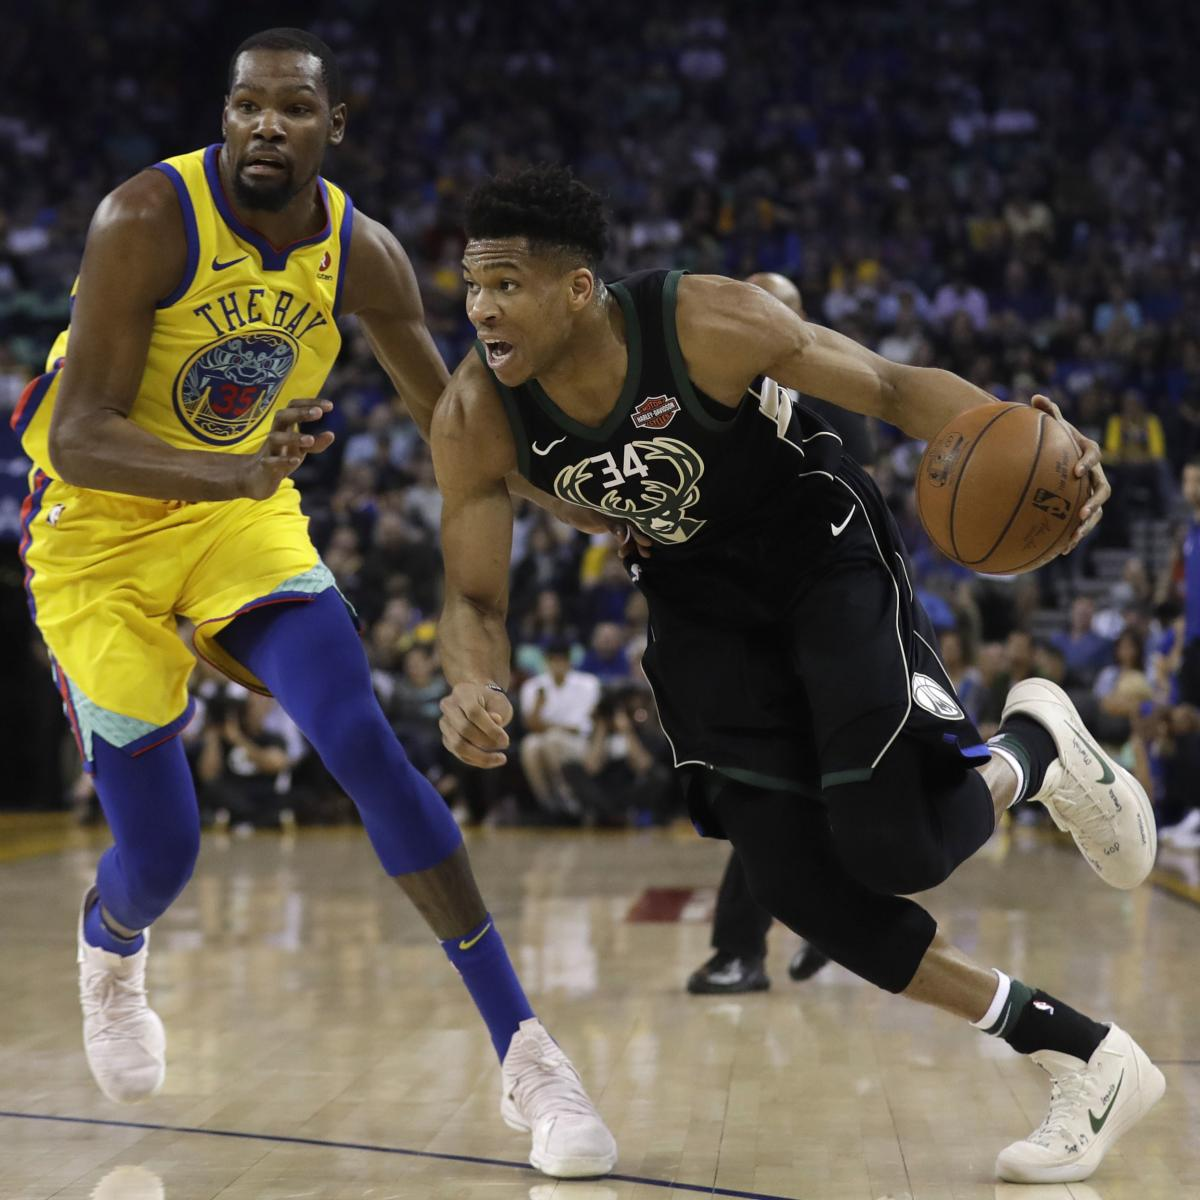 Warriors Come Out To Play Bleacher Report: Giannis Antetokounmpo, Bucks Beat Injury-Depleted Warriors